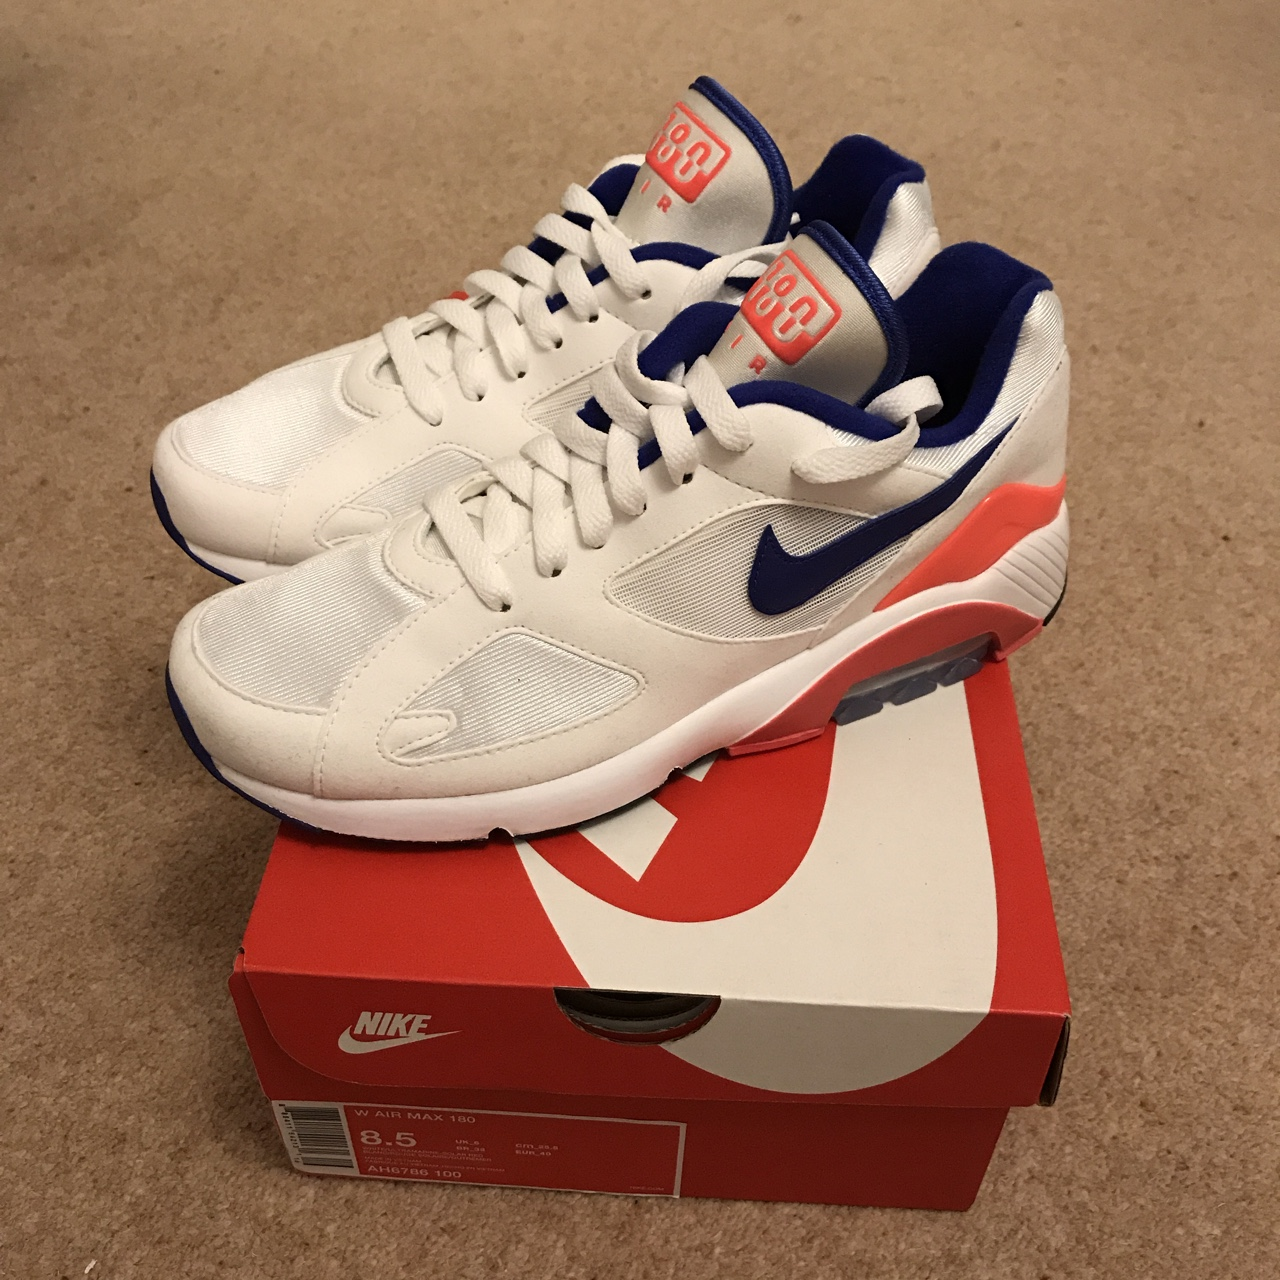 Nike Air Max 180 Ultramarine Solar Red Size UK Depop